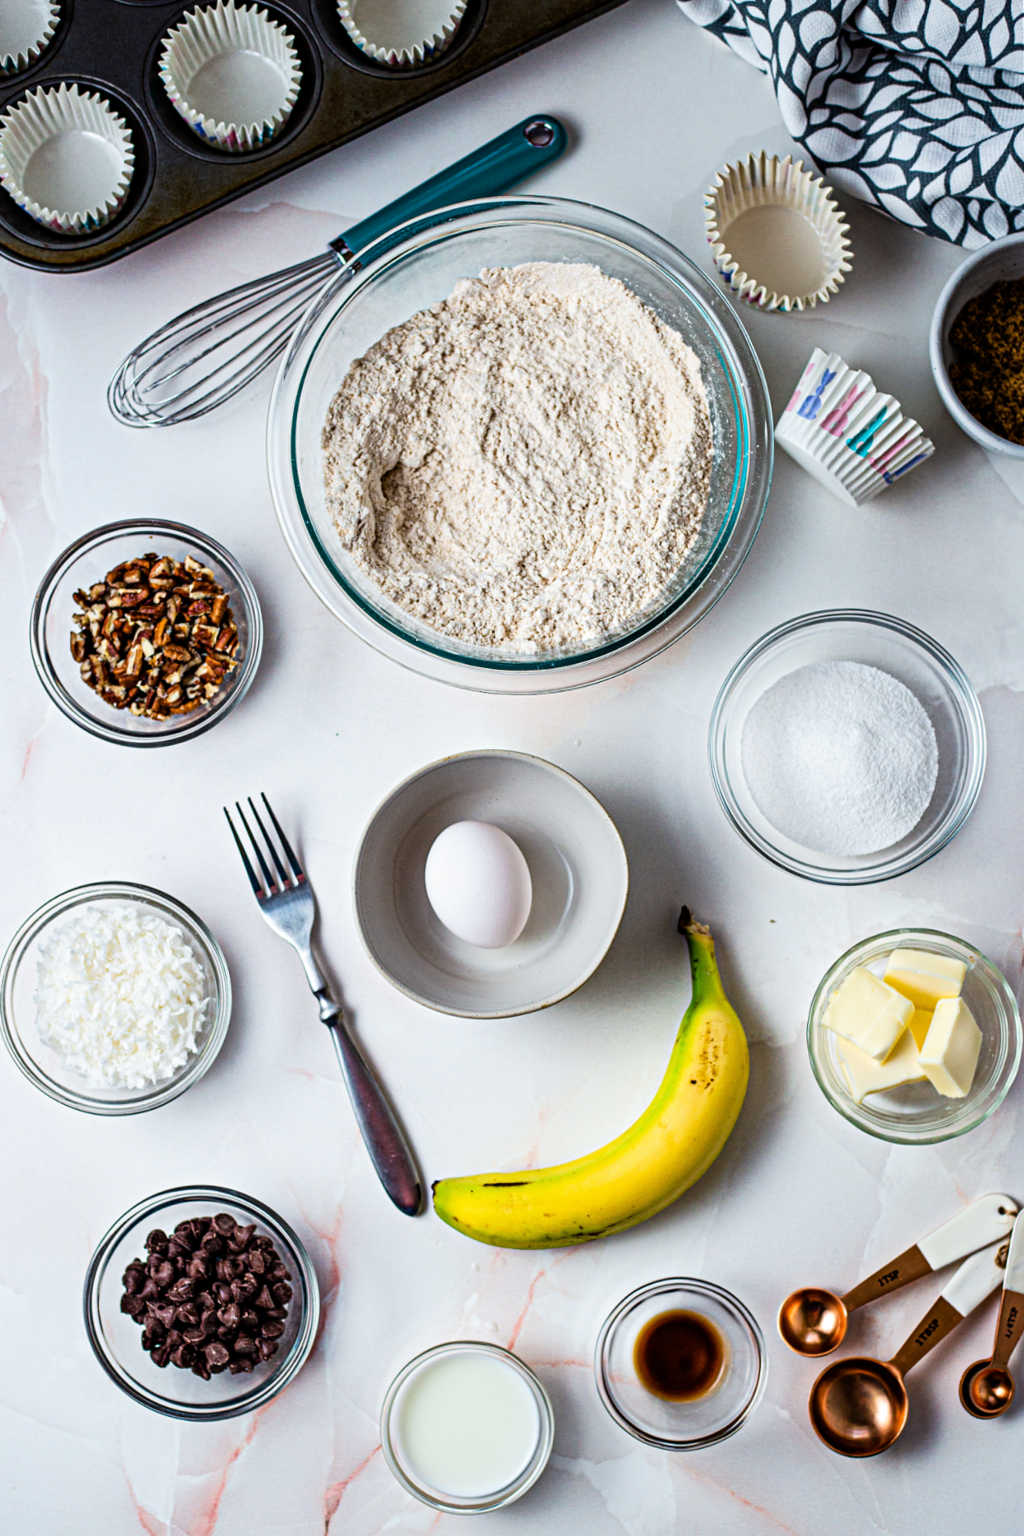 ingredients for three chocolatey coconut banana muffins on a table.